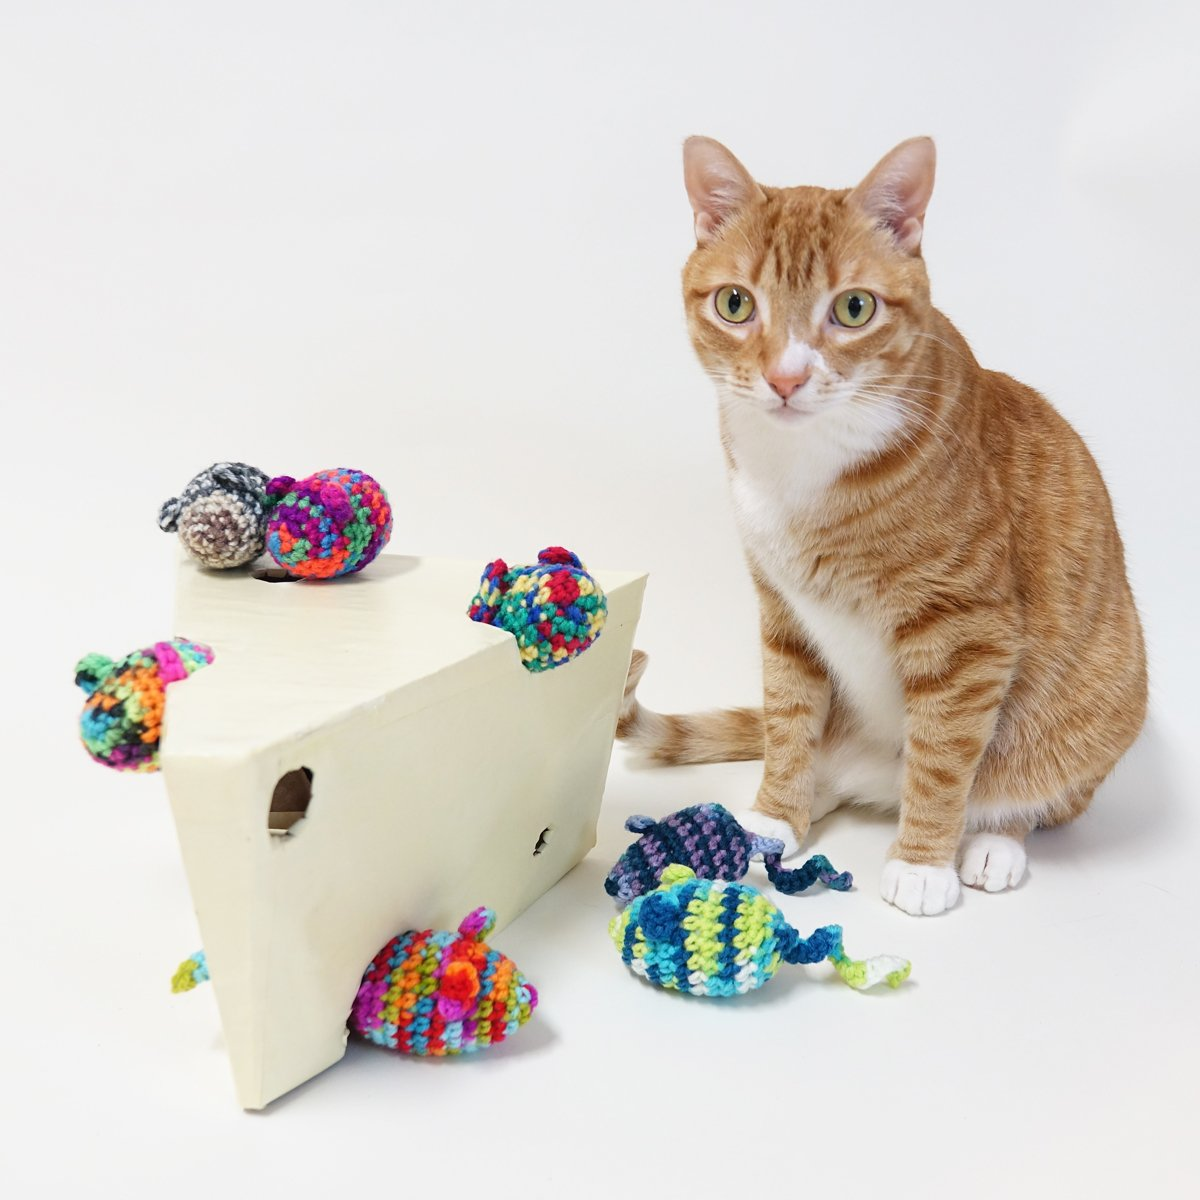 Cole Marmalade On Twitter Jess Makes Crocheted Cat Toys Filled With Homegrown Catnip And Butt Magnets Check Out Her Etsy Store Https Etsycom Shop Accessorati